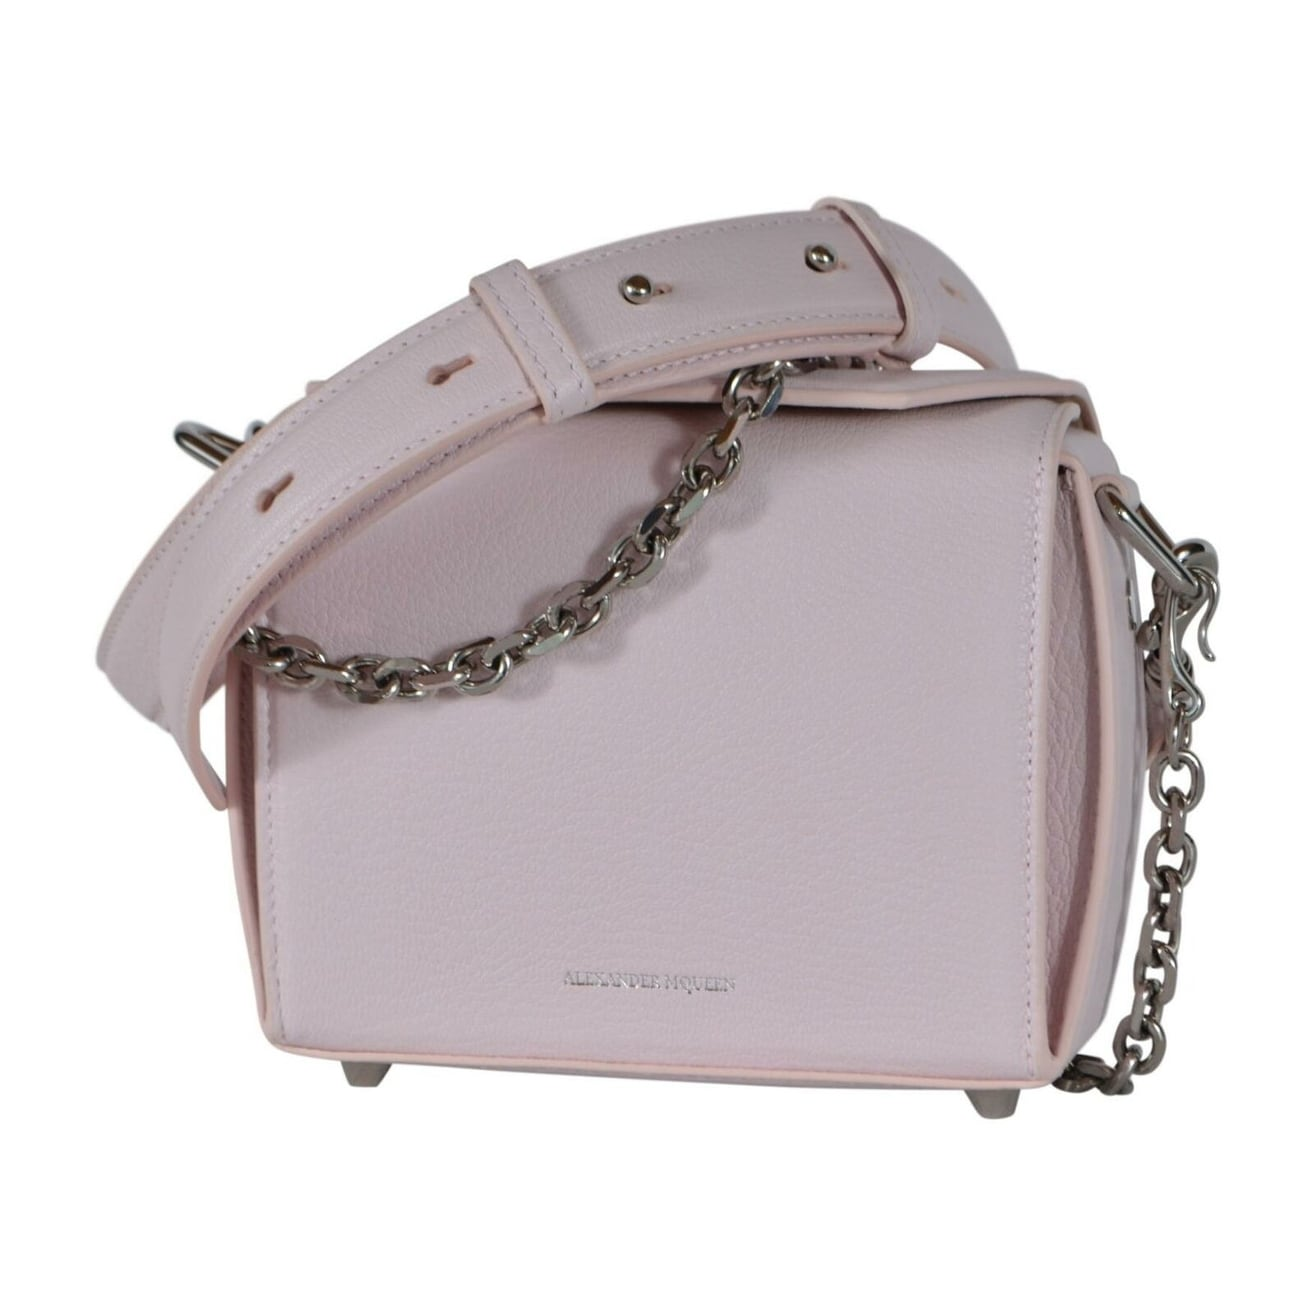 Alexander Mcqueen 479767 Pink Leather